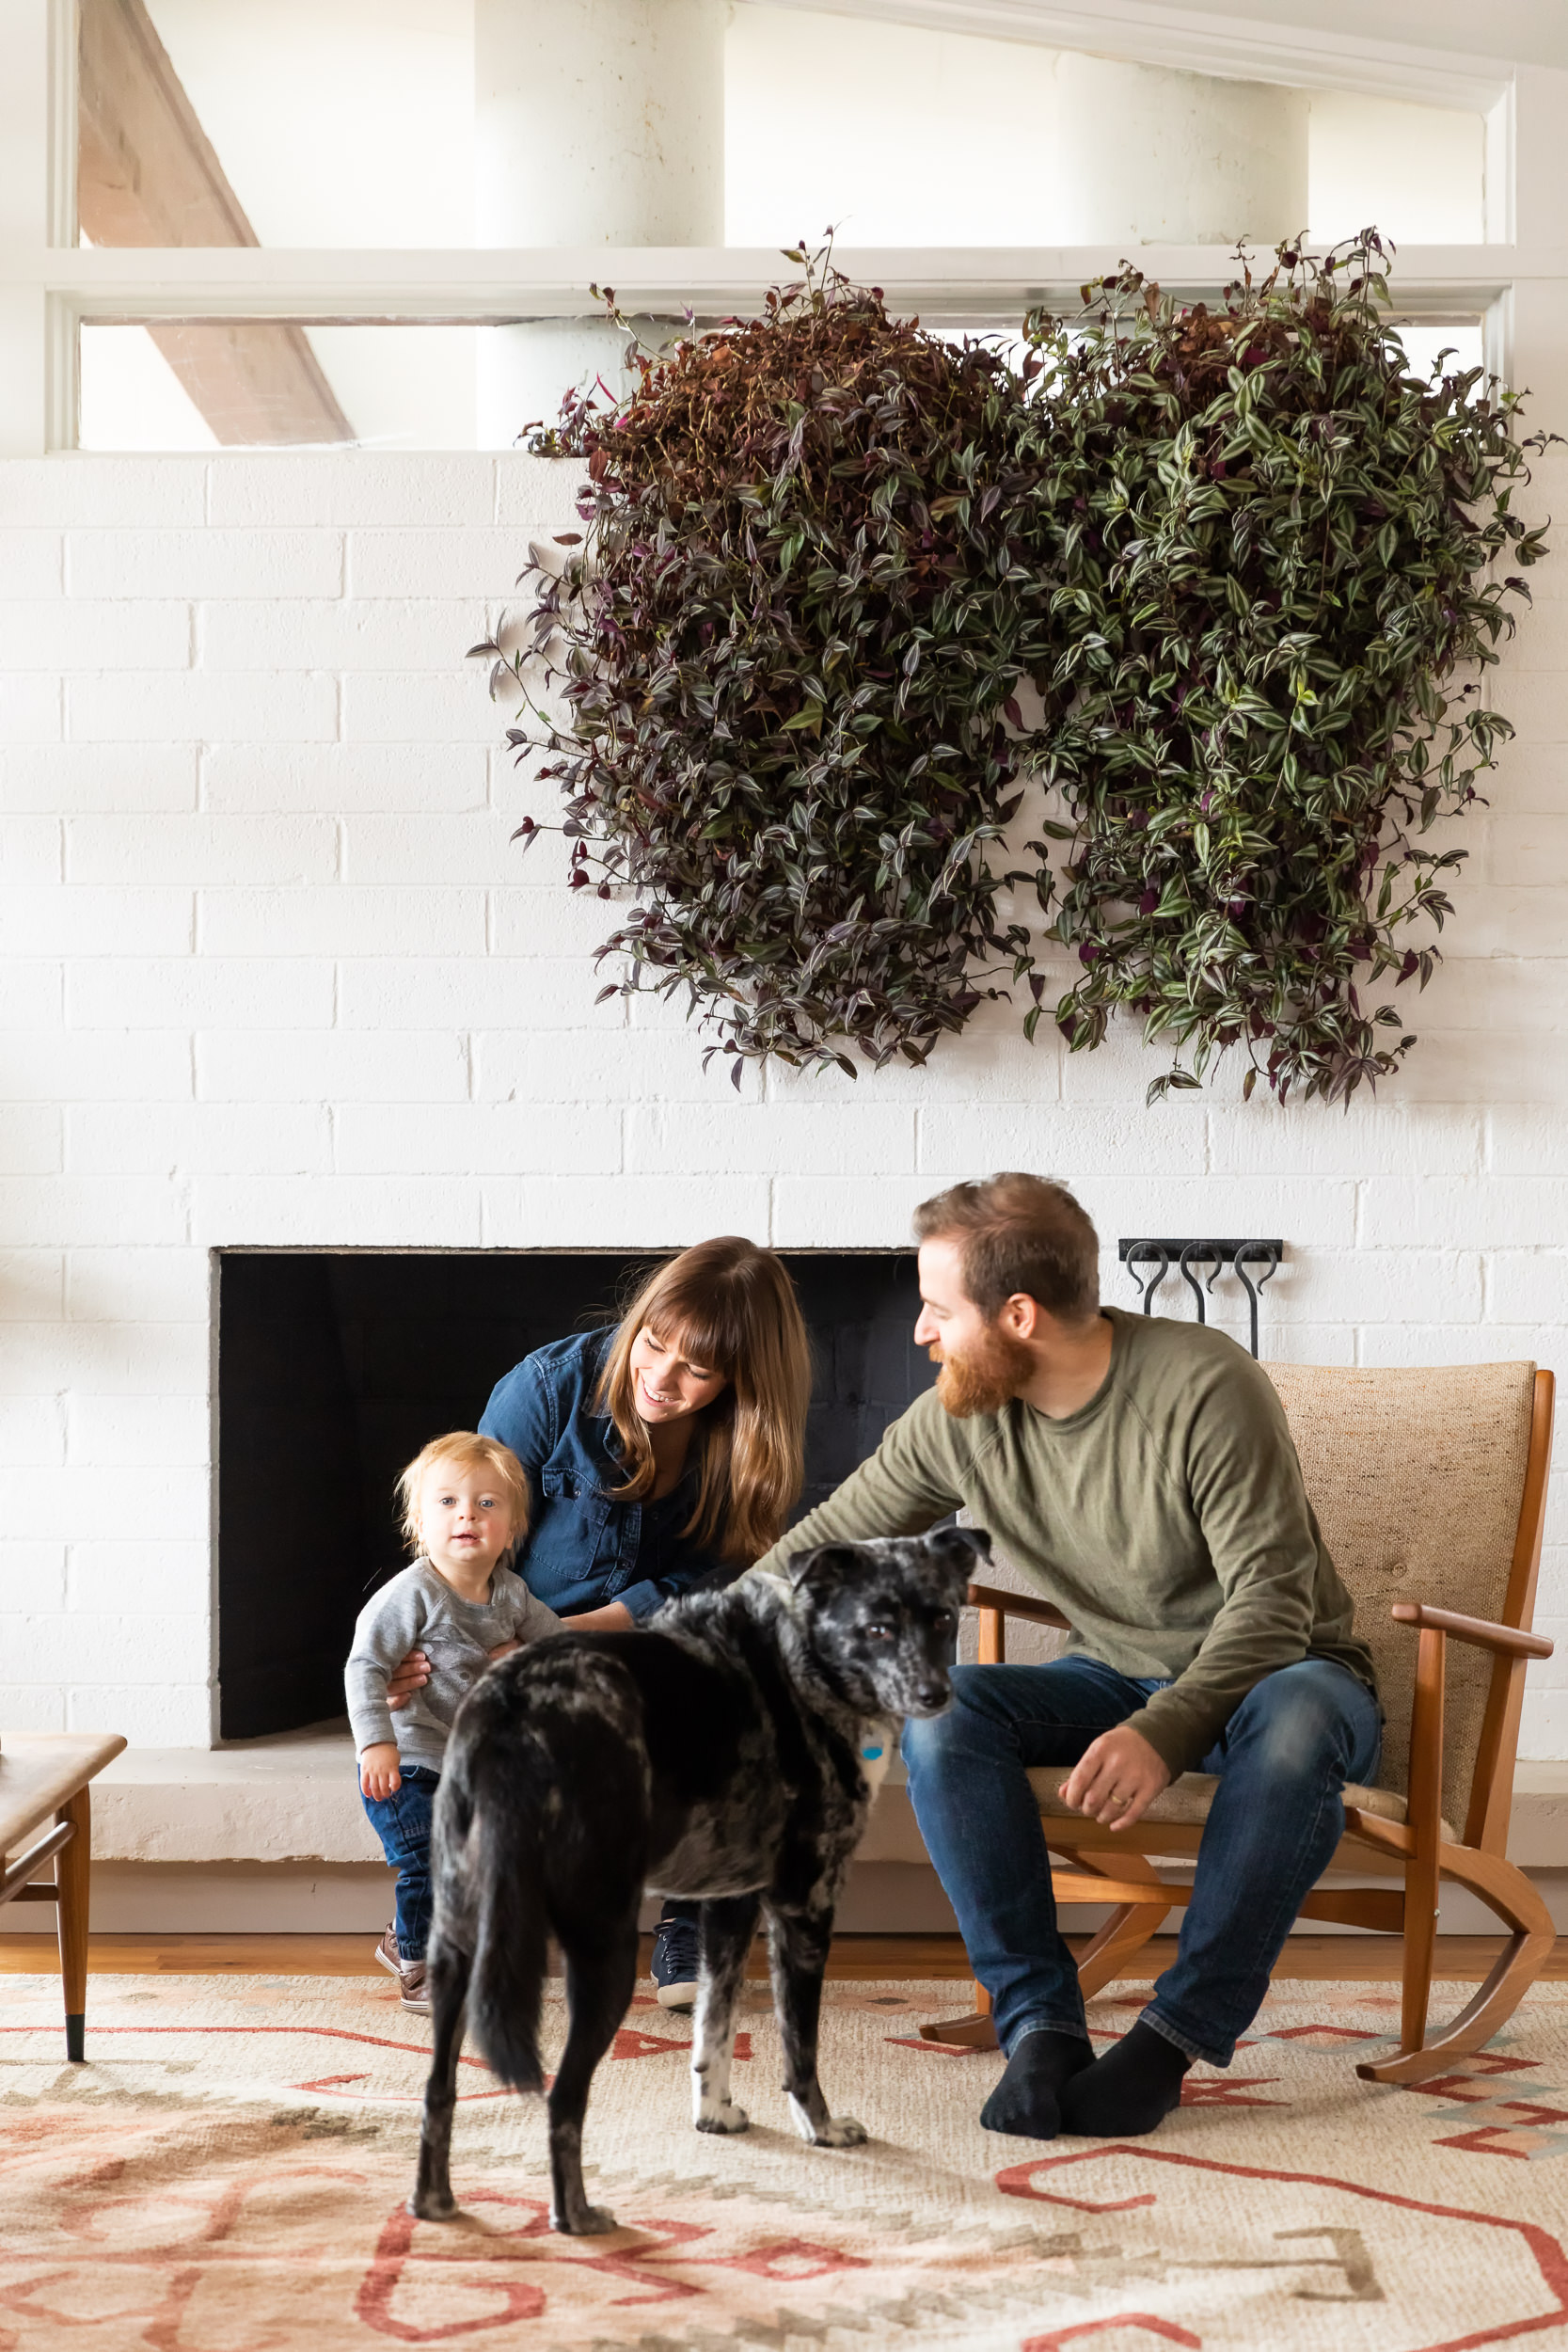 Danielle, Cole, their son, and the family dog in the home's living area.